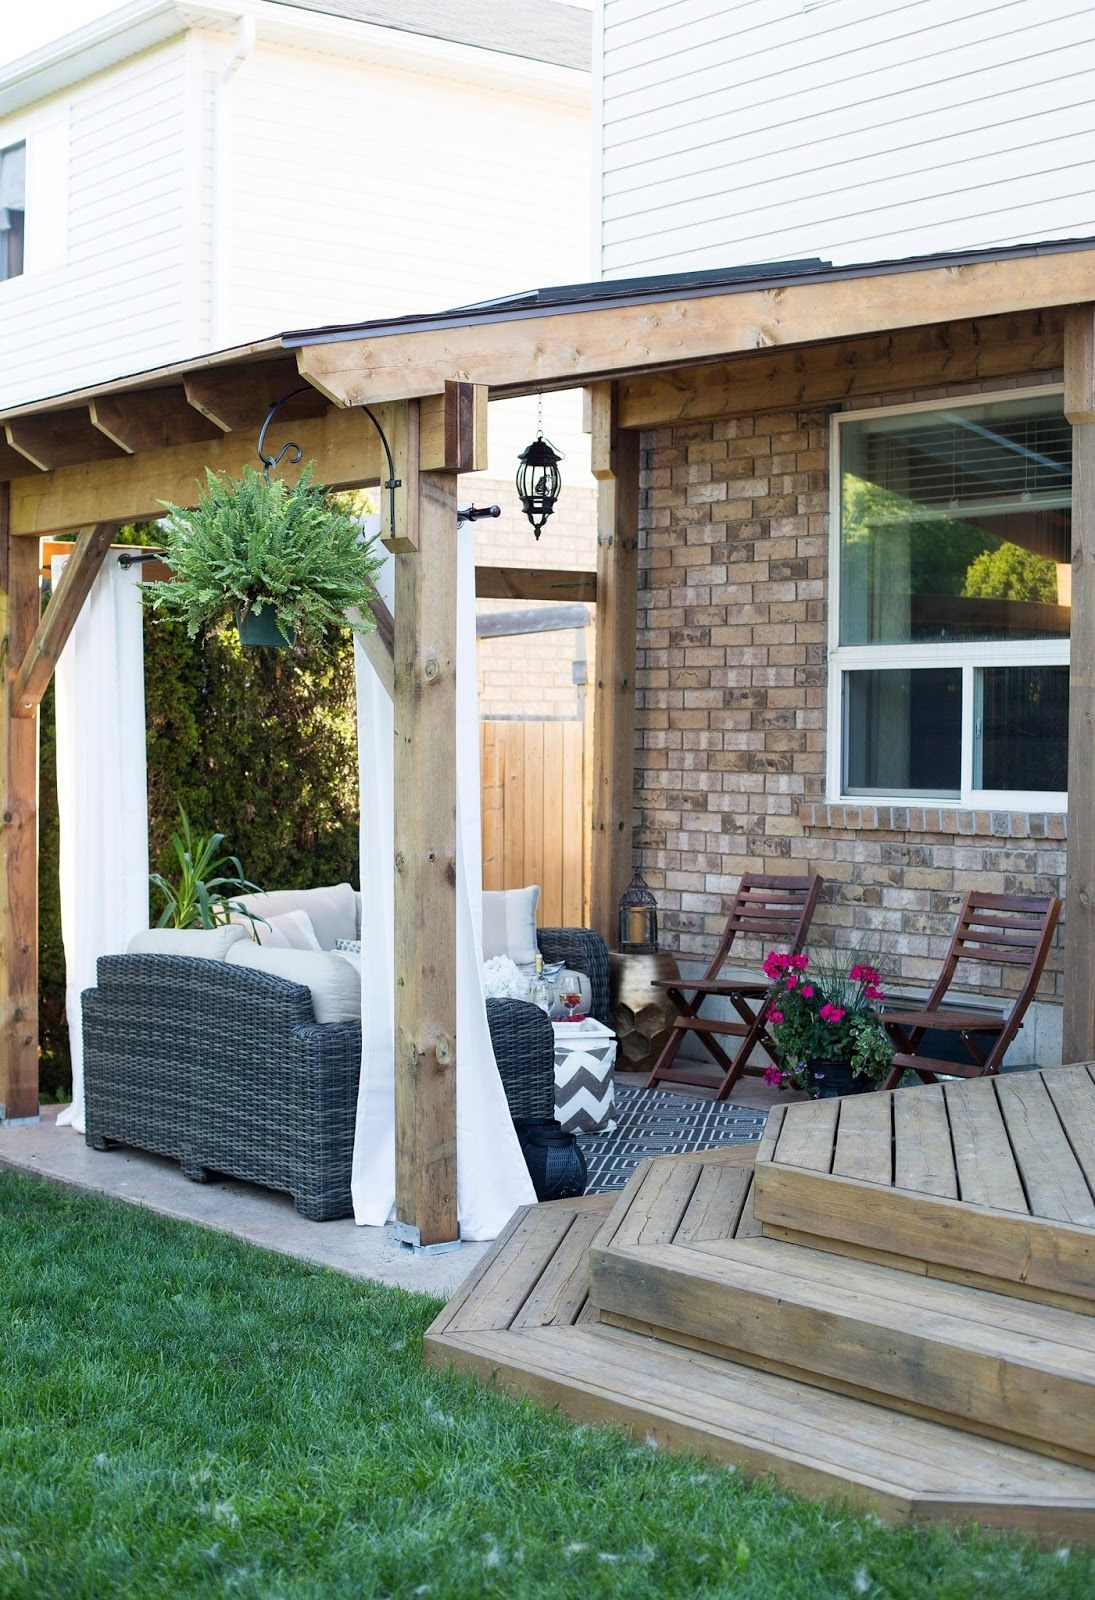 How to Build a Lean to Covered Patio